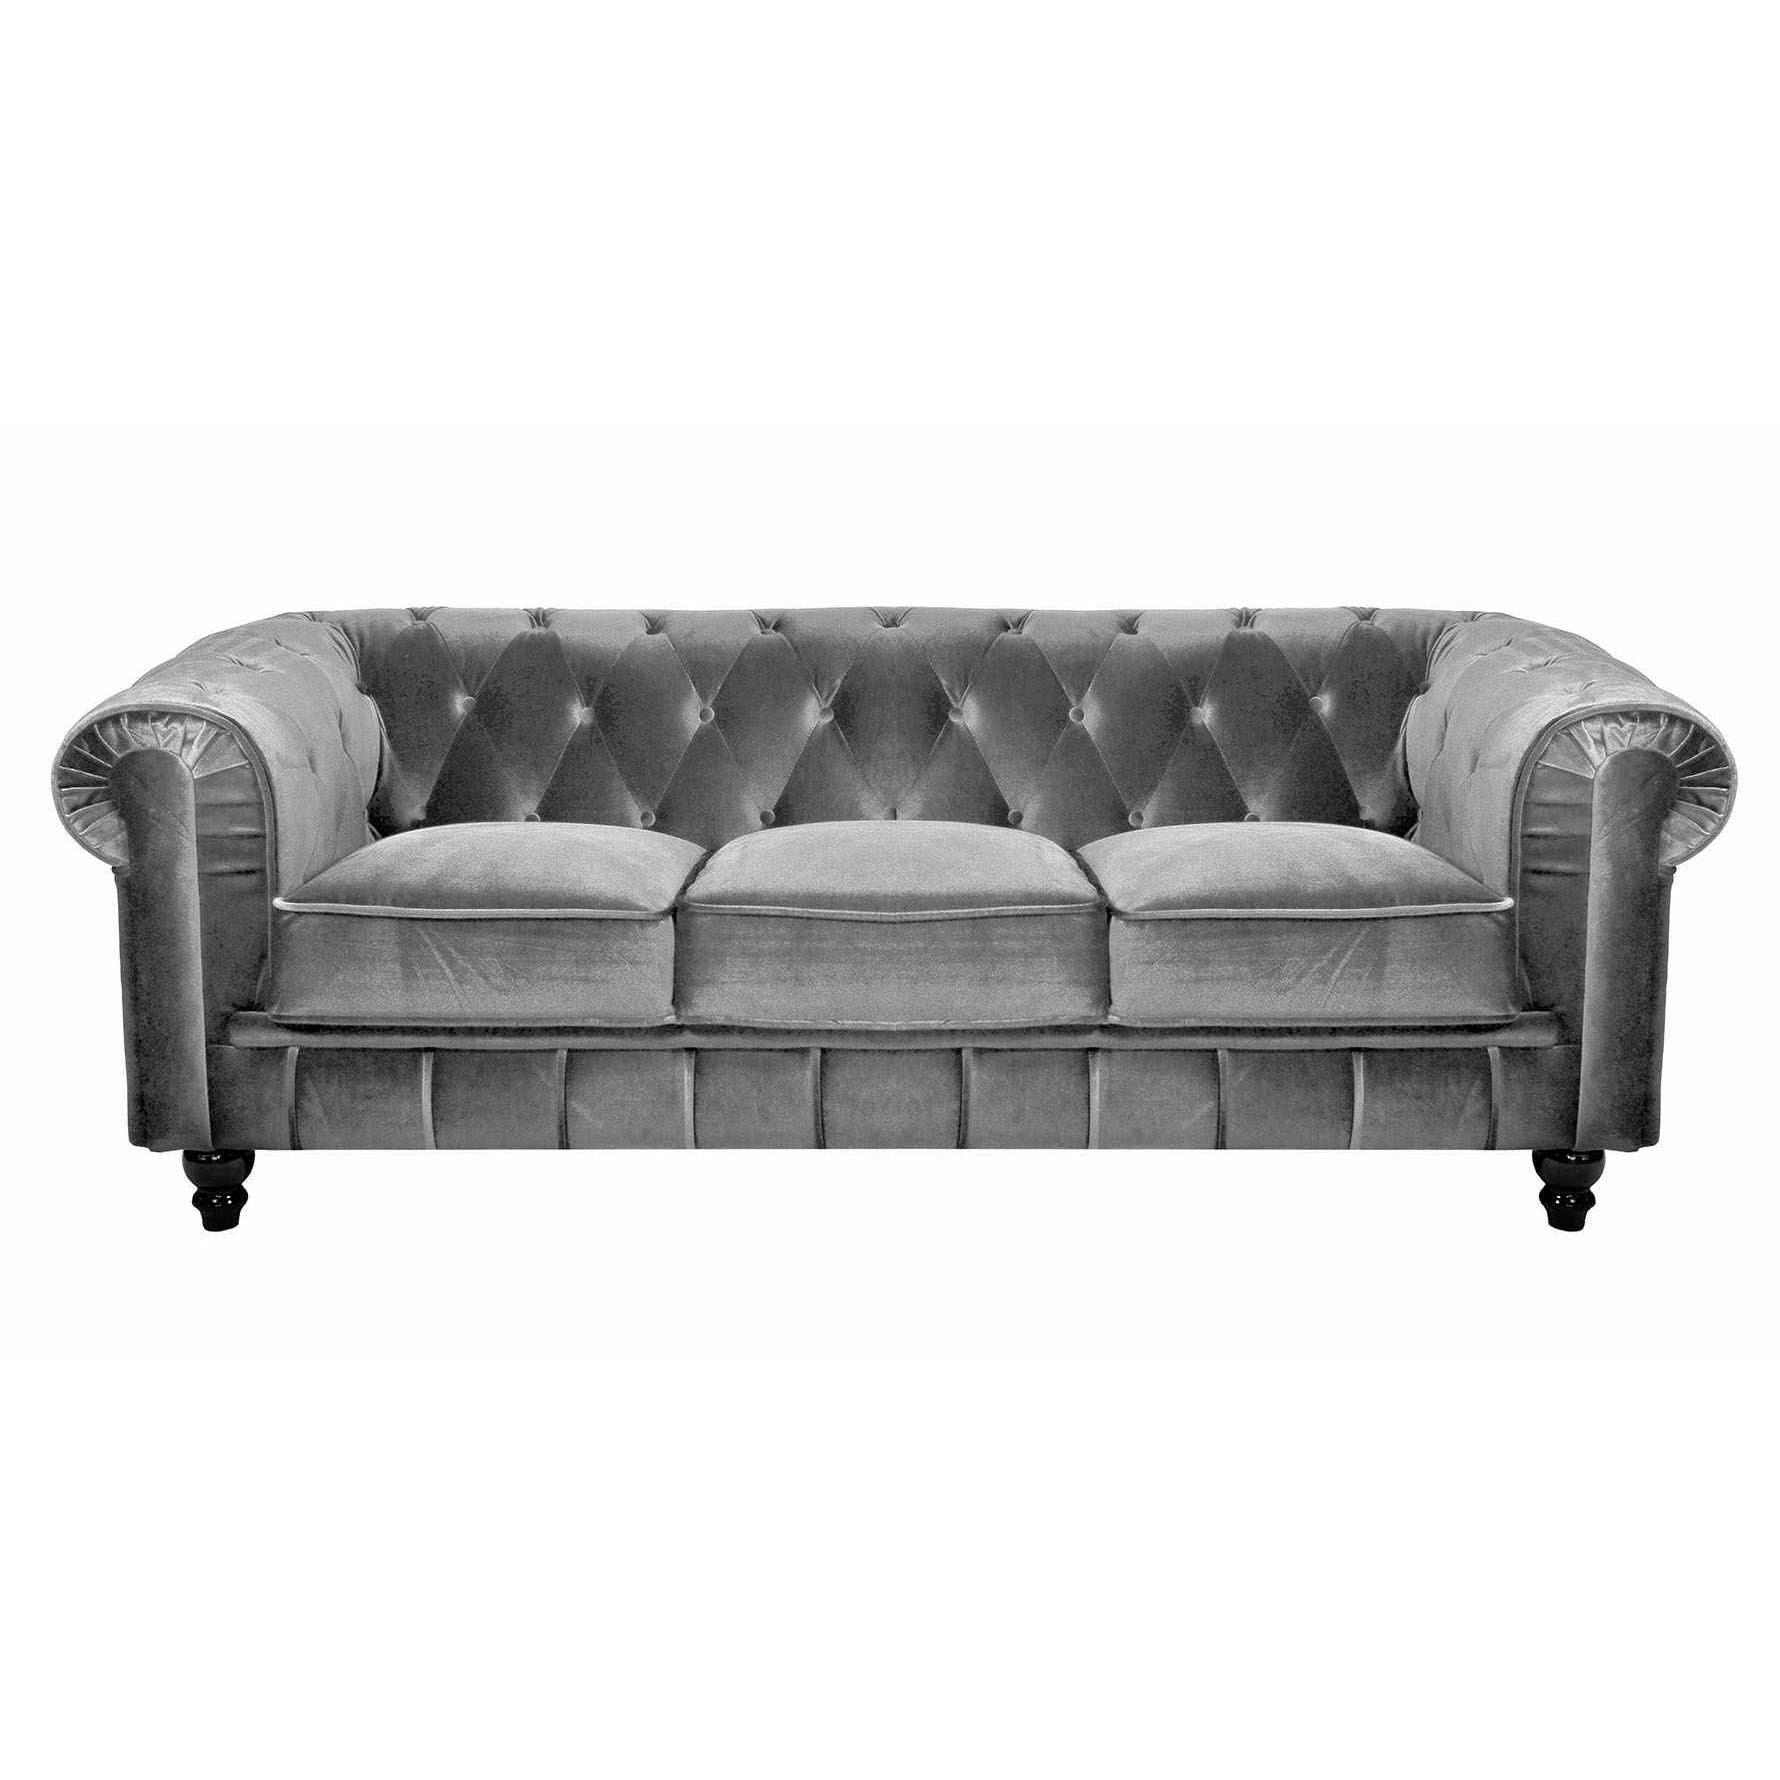 Deco in paris canape 3 places velours gris chesterfield can chester 3p velours gris for Housse canape velours